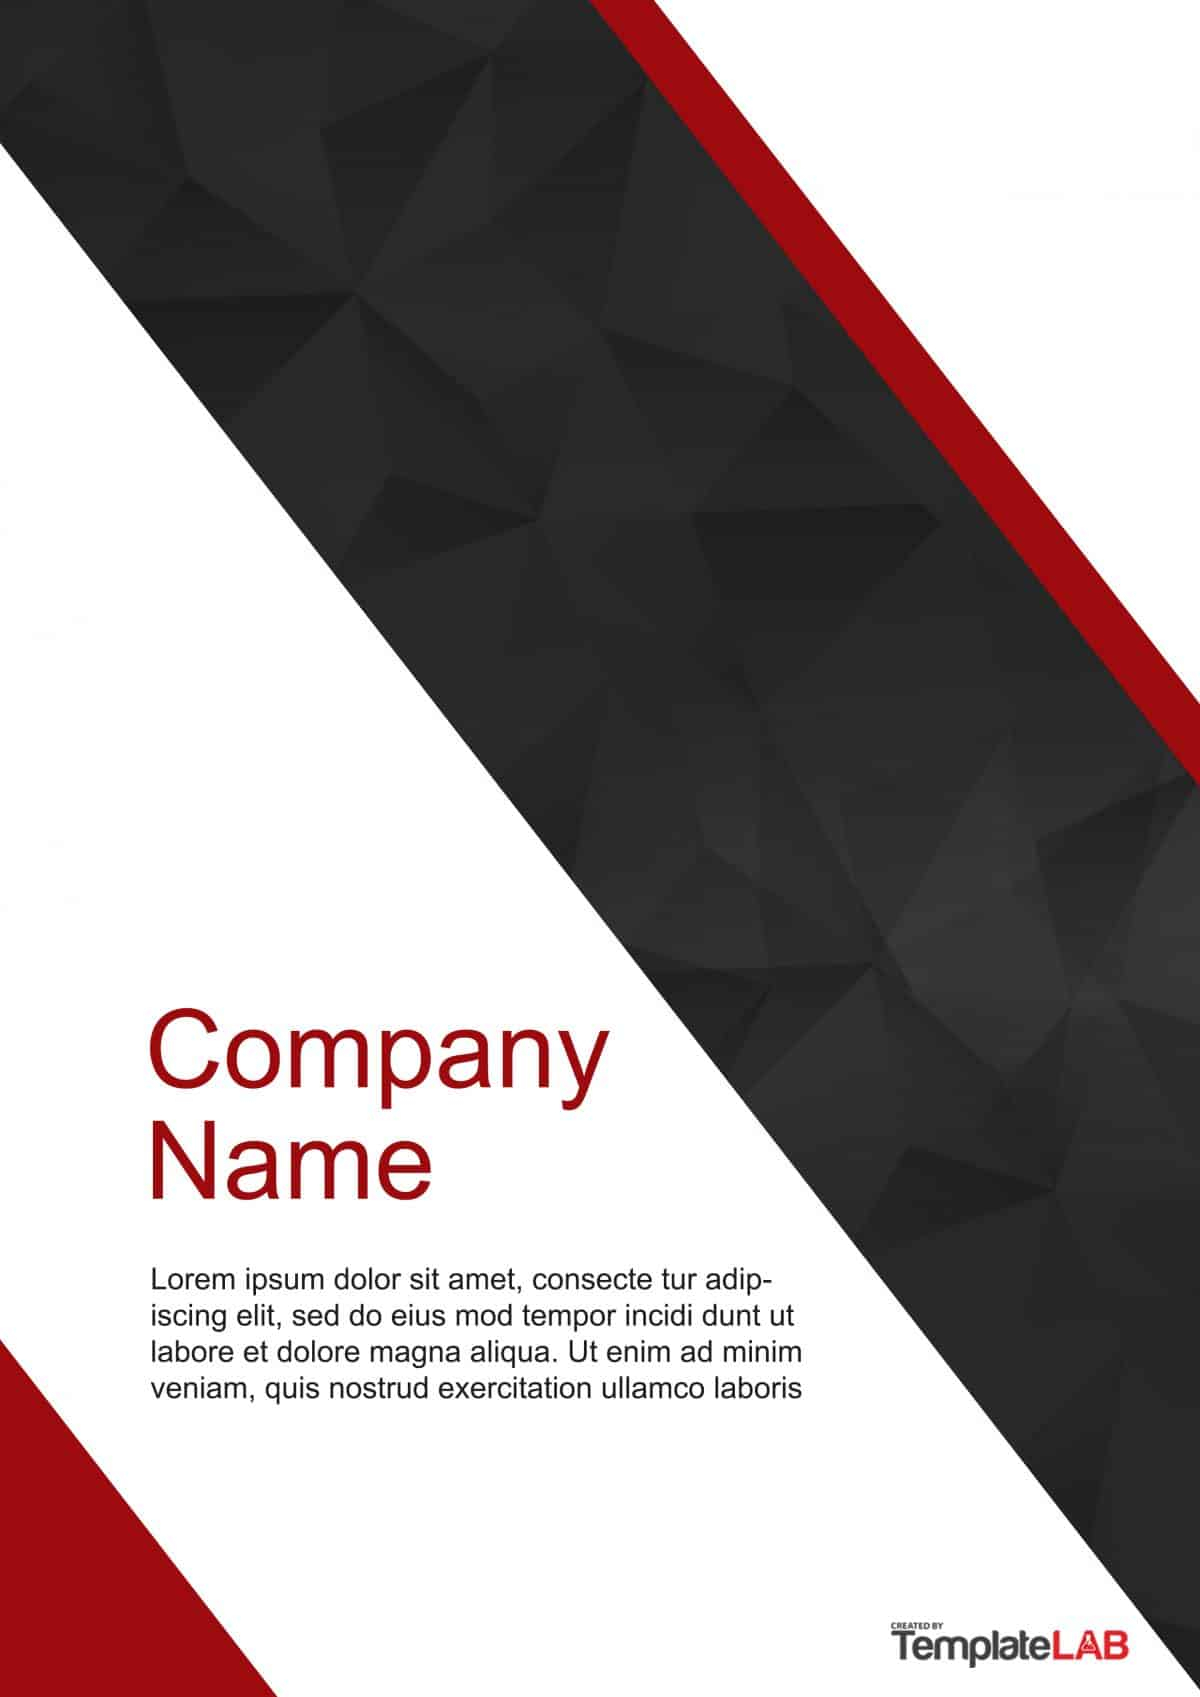 39 Amazing Cover Page Templates (Word + Psd) ᐅ Template Lab For Word Title Page Templates